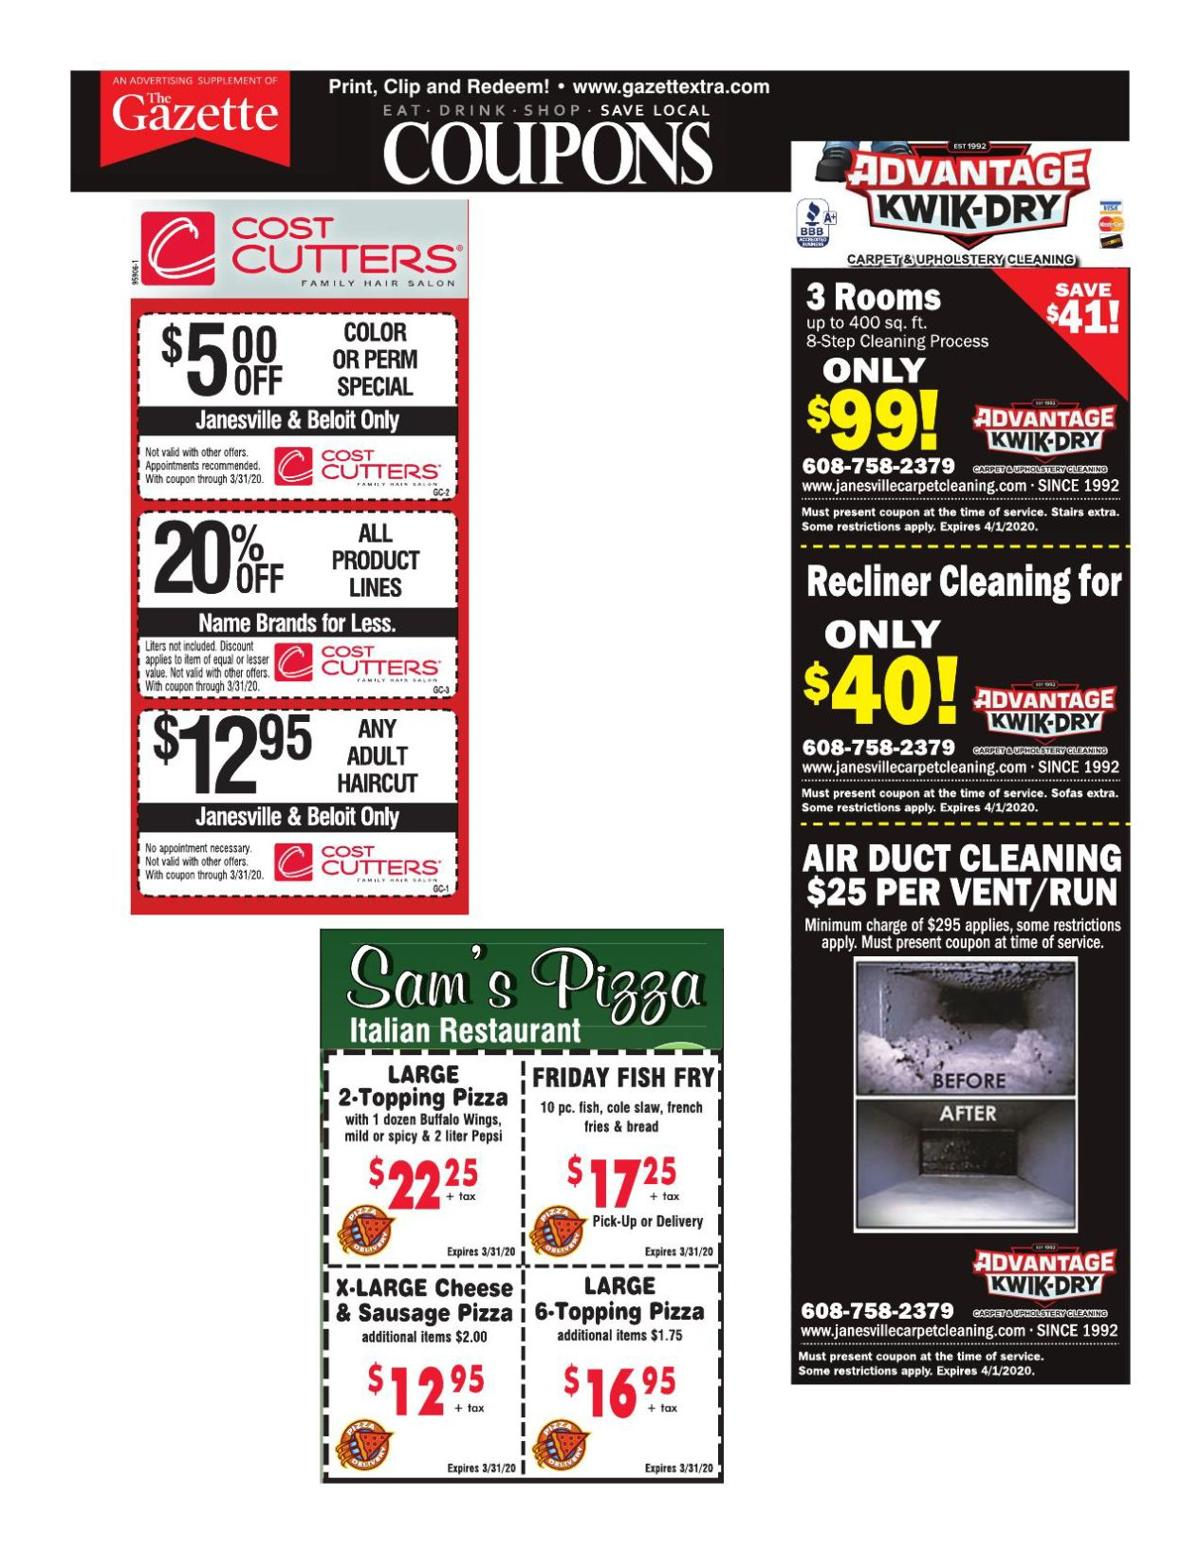 Gazette coupons